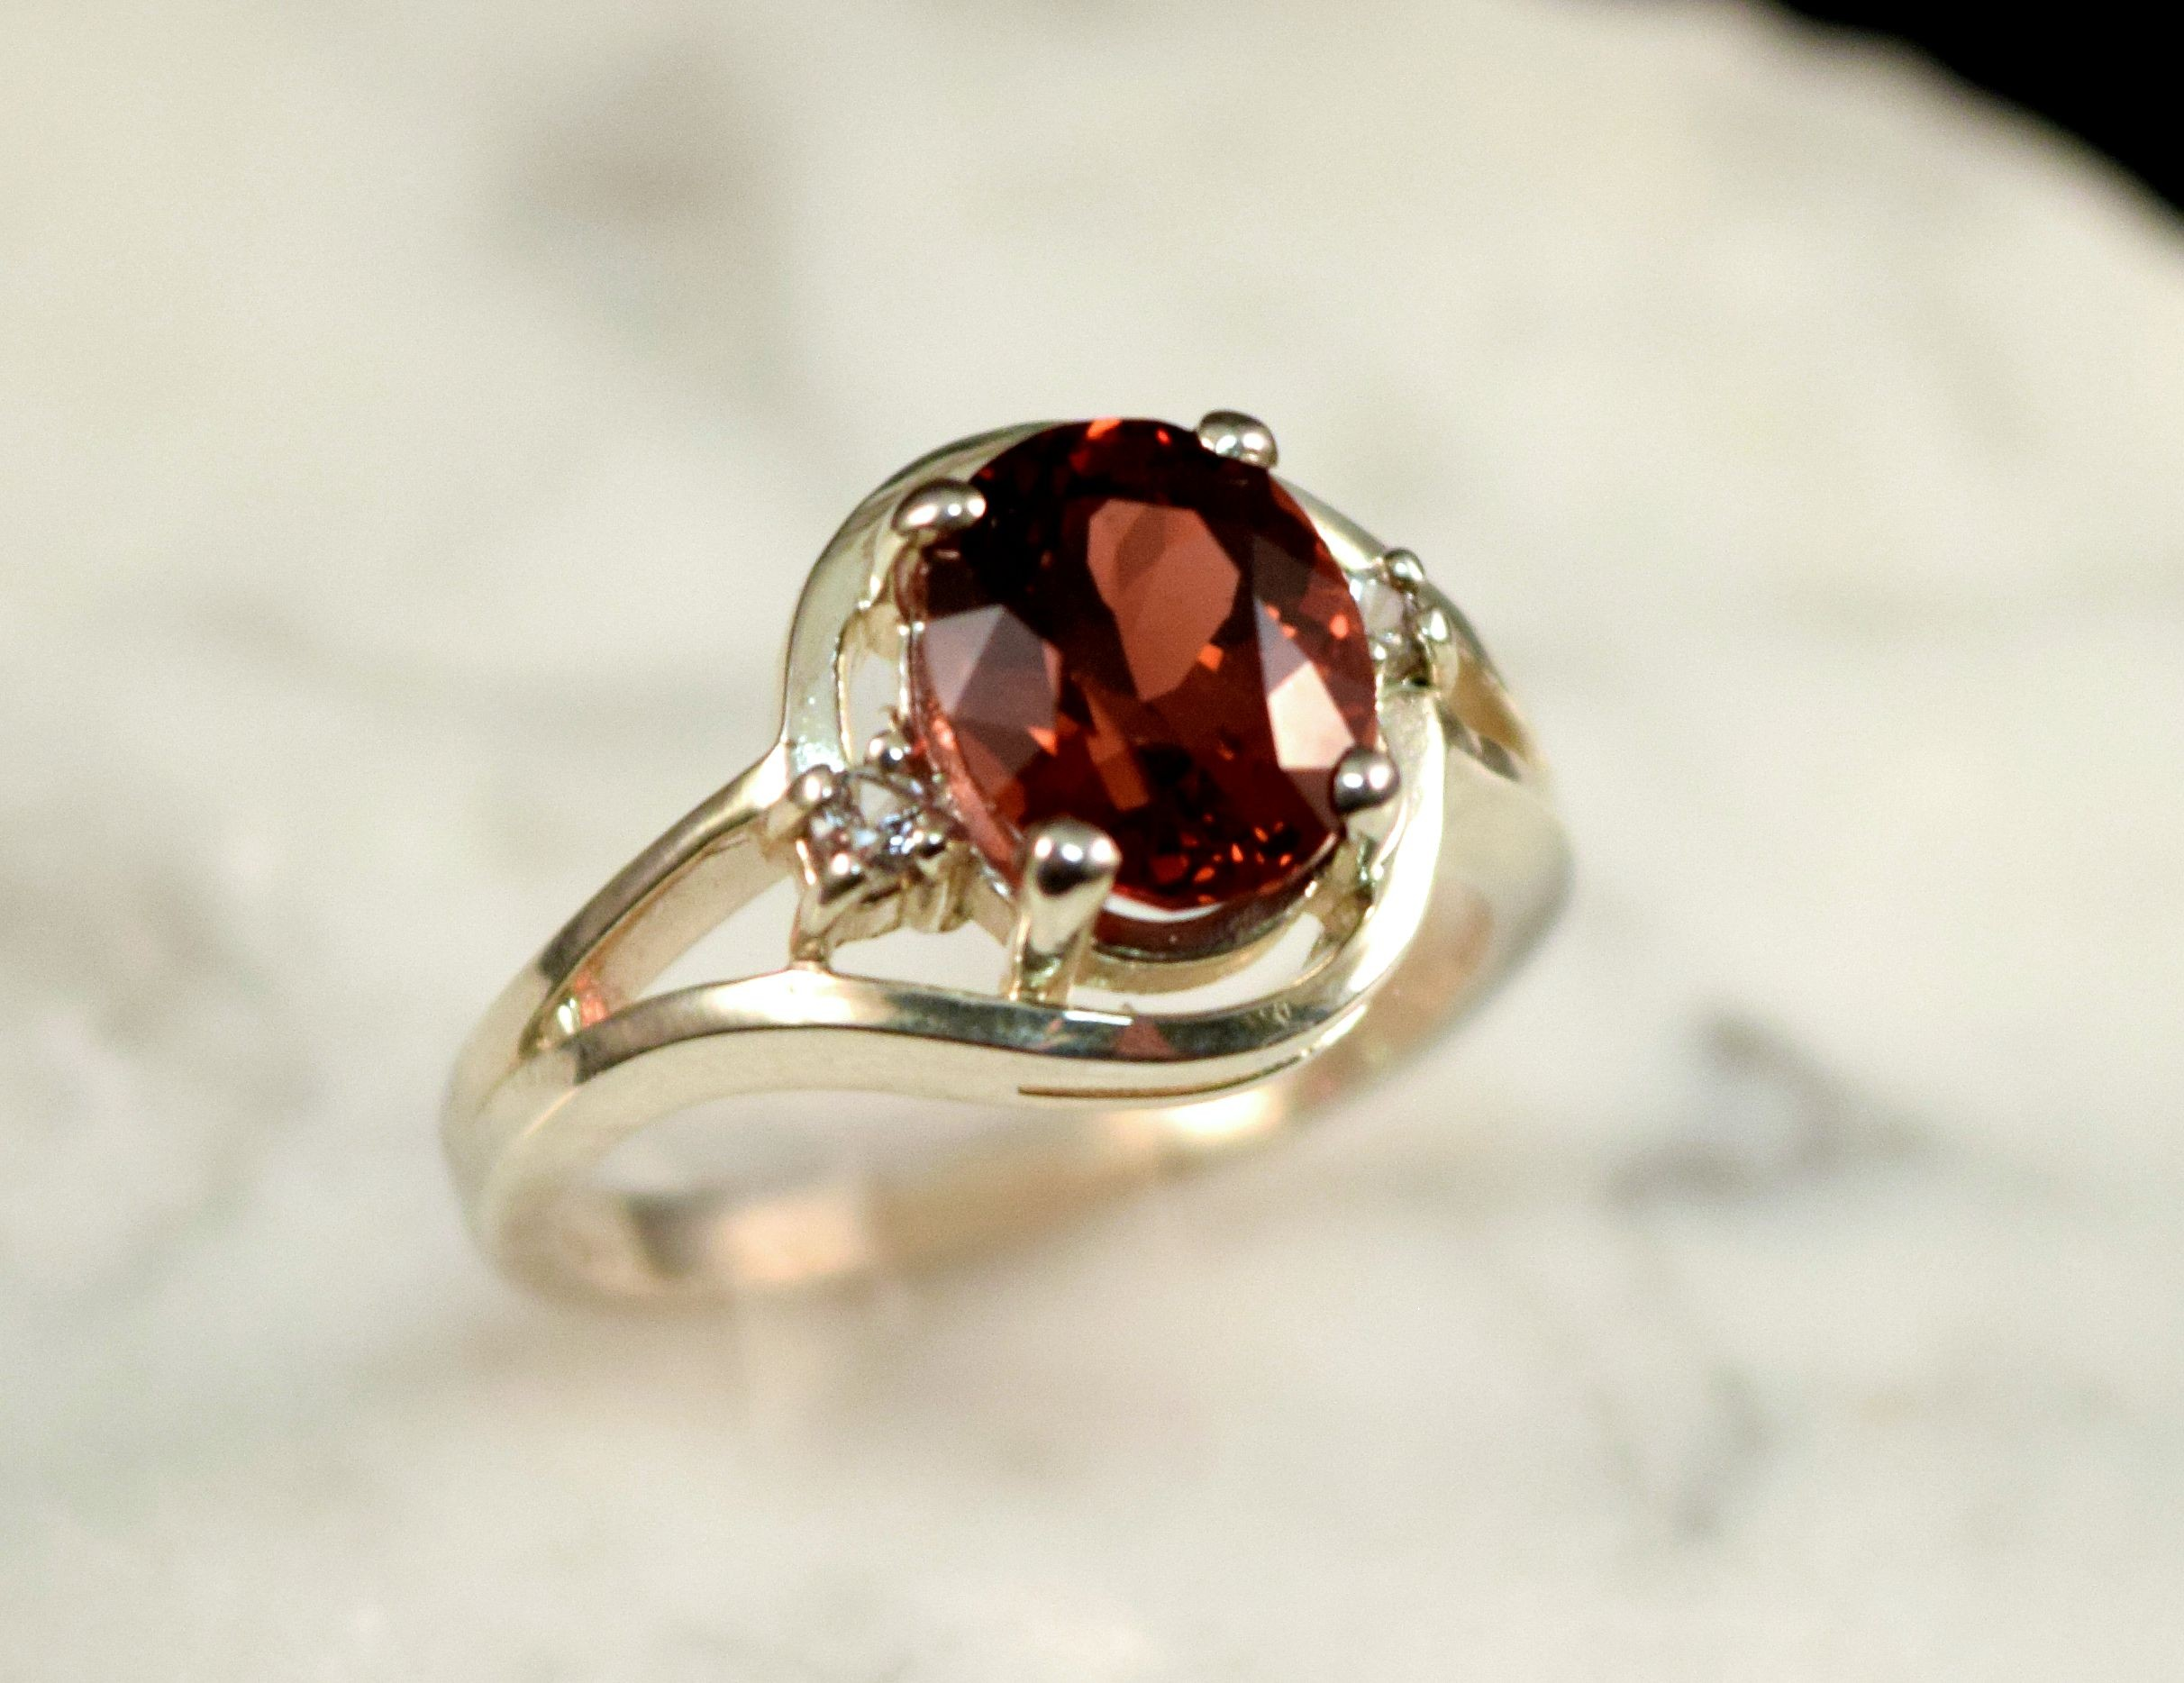 Rs0163 Garnet and White Sapphire Sterling Silve rRing